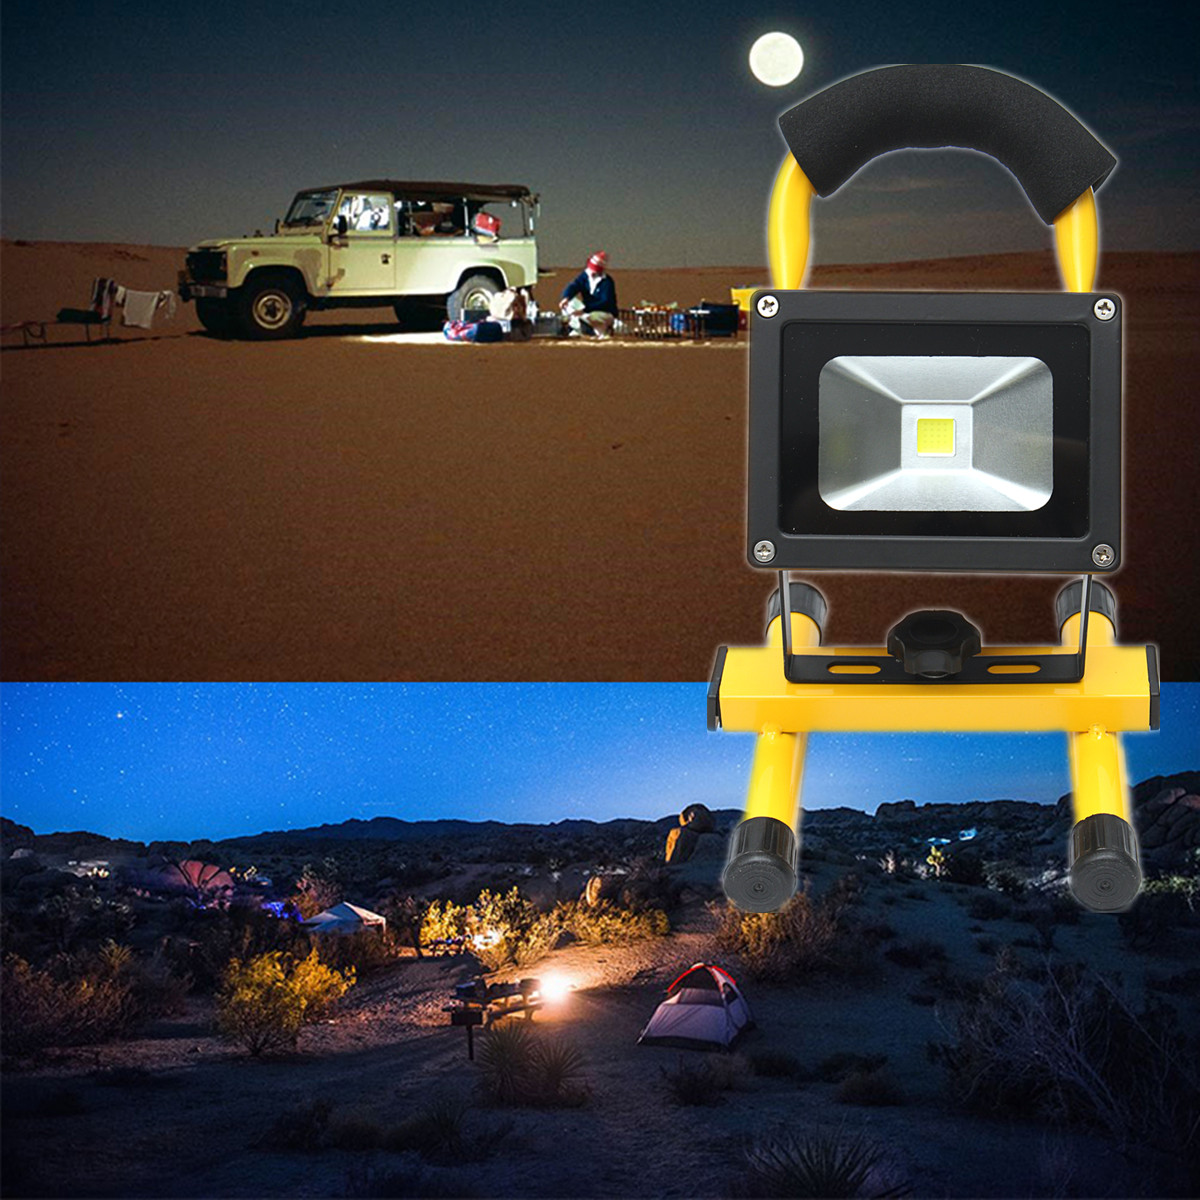 Waterproof Rechargeable 10W LED Floodlight Light Camping Lamp Outdoor Indoor Working US/EU Plug White Portable Gardens Workplace